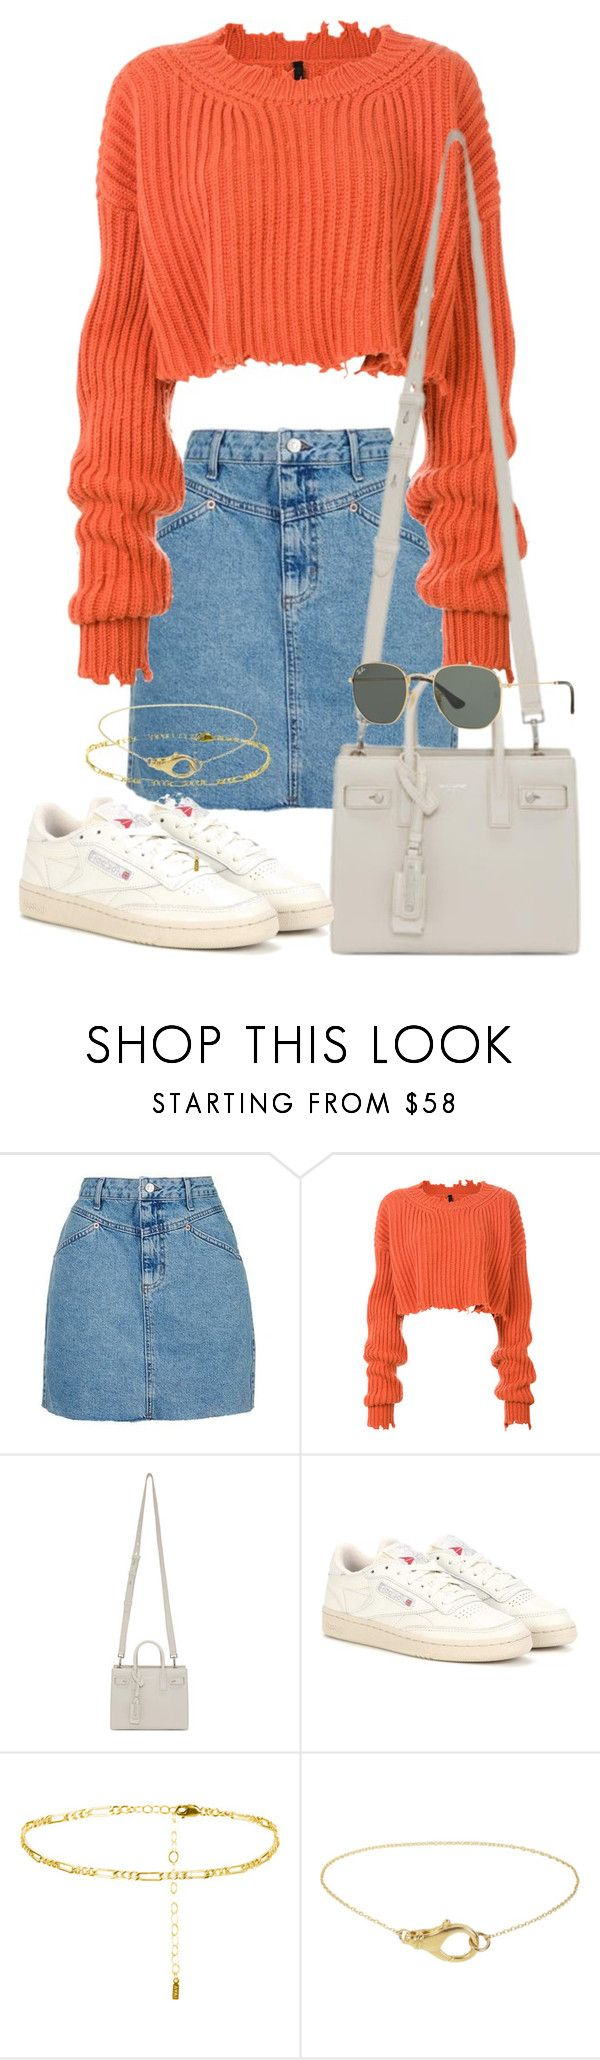 """""""Sin título #3724"""" by camilae97 ❤ liked on Polyvore featuring Topshop, Unravel, Yves Saint Laurent, Reebok and Ray-Ban"""